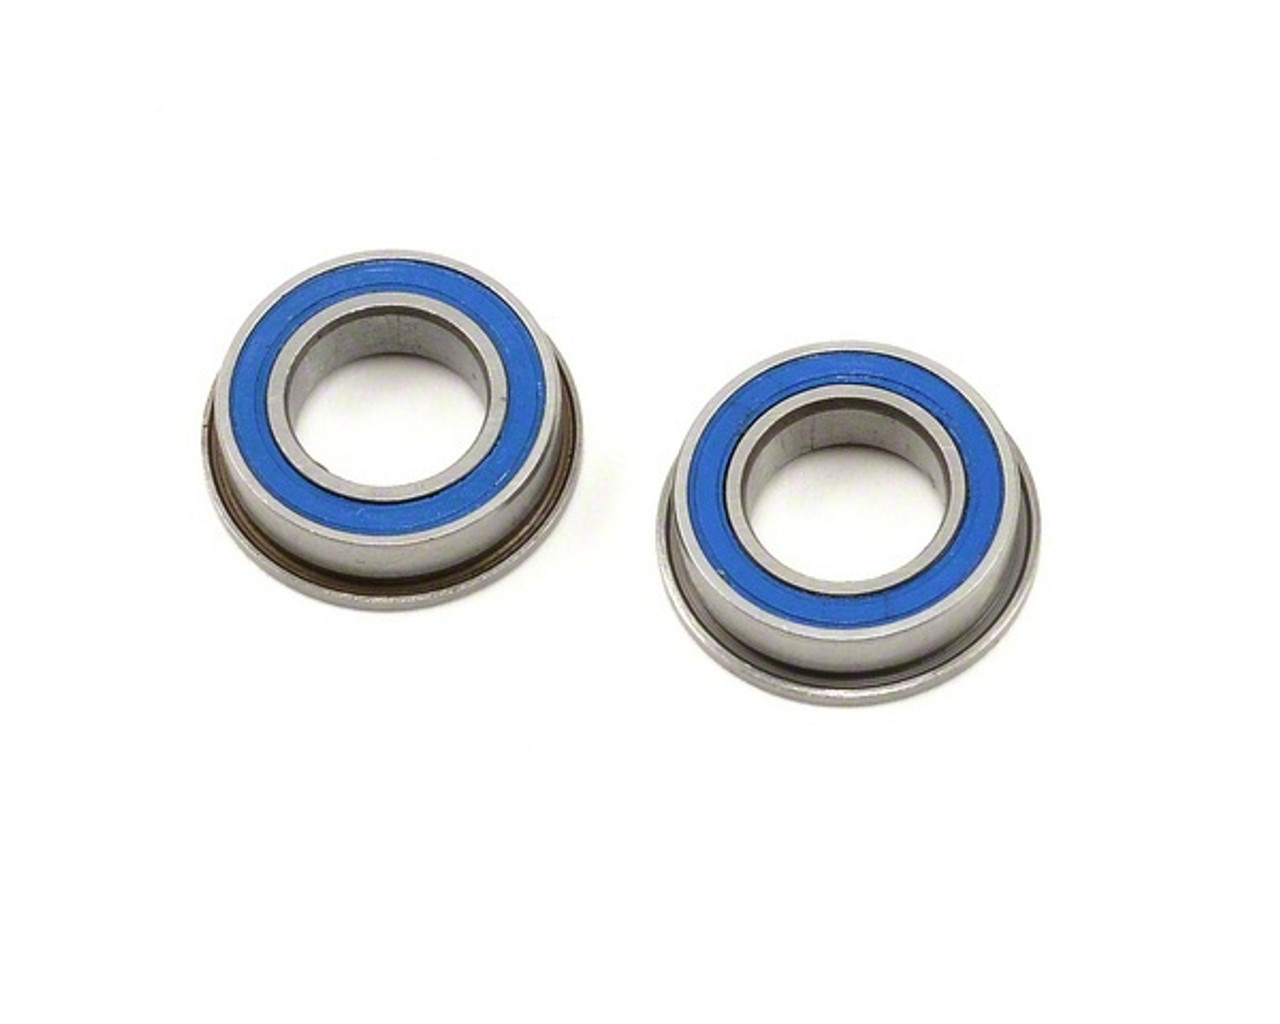 Bearings Metric Series 8x14x4 MM Flanged rubber sealed (2 Pack) (MF148 2RS)